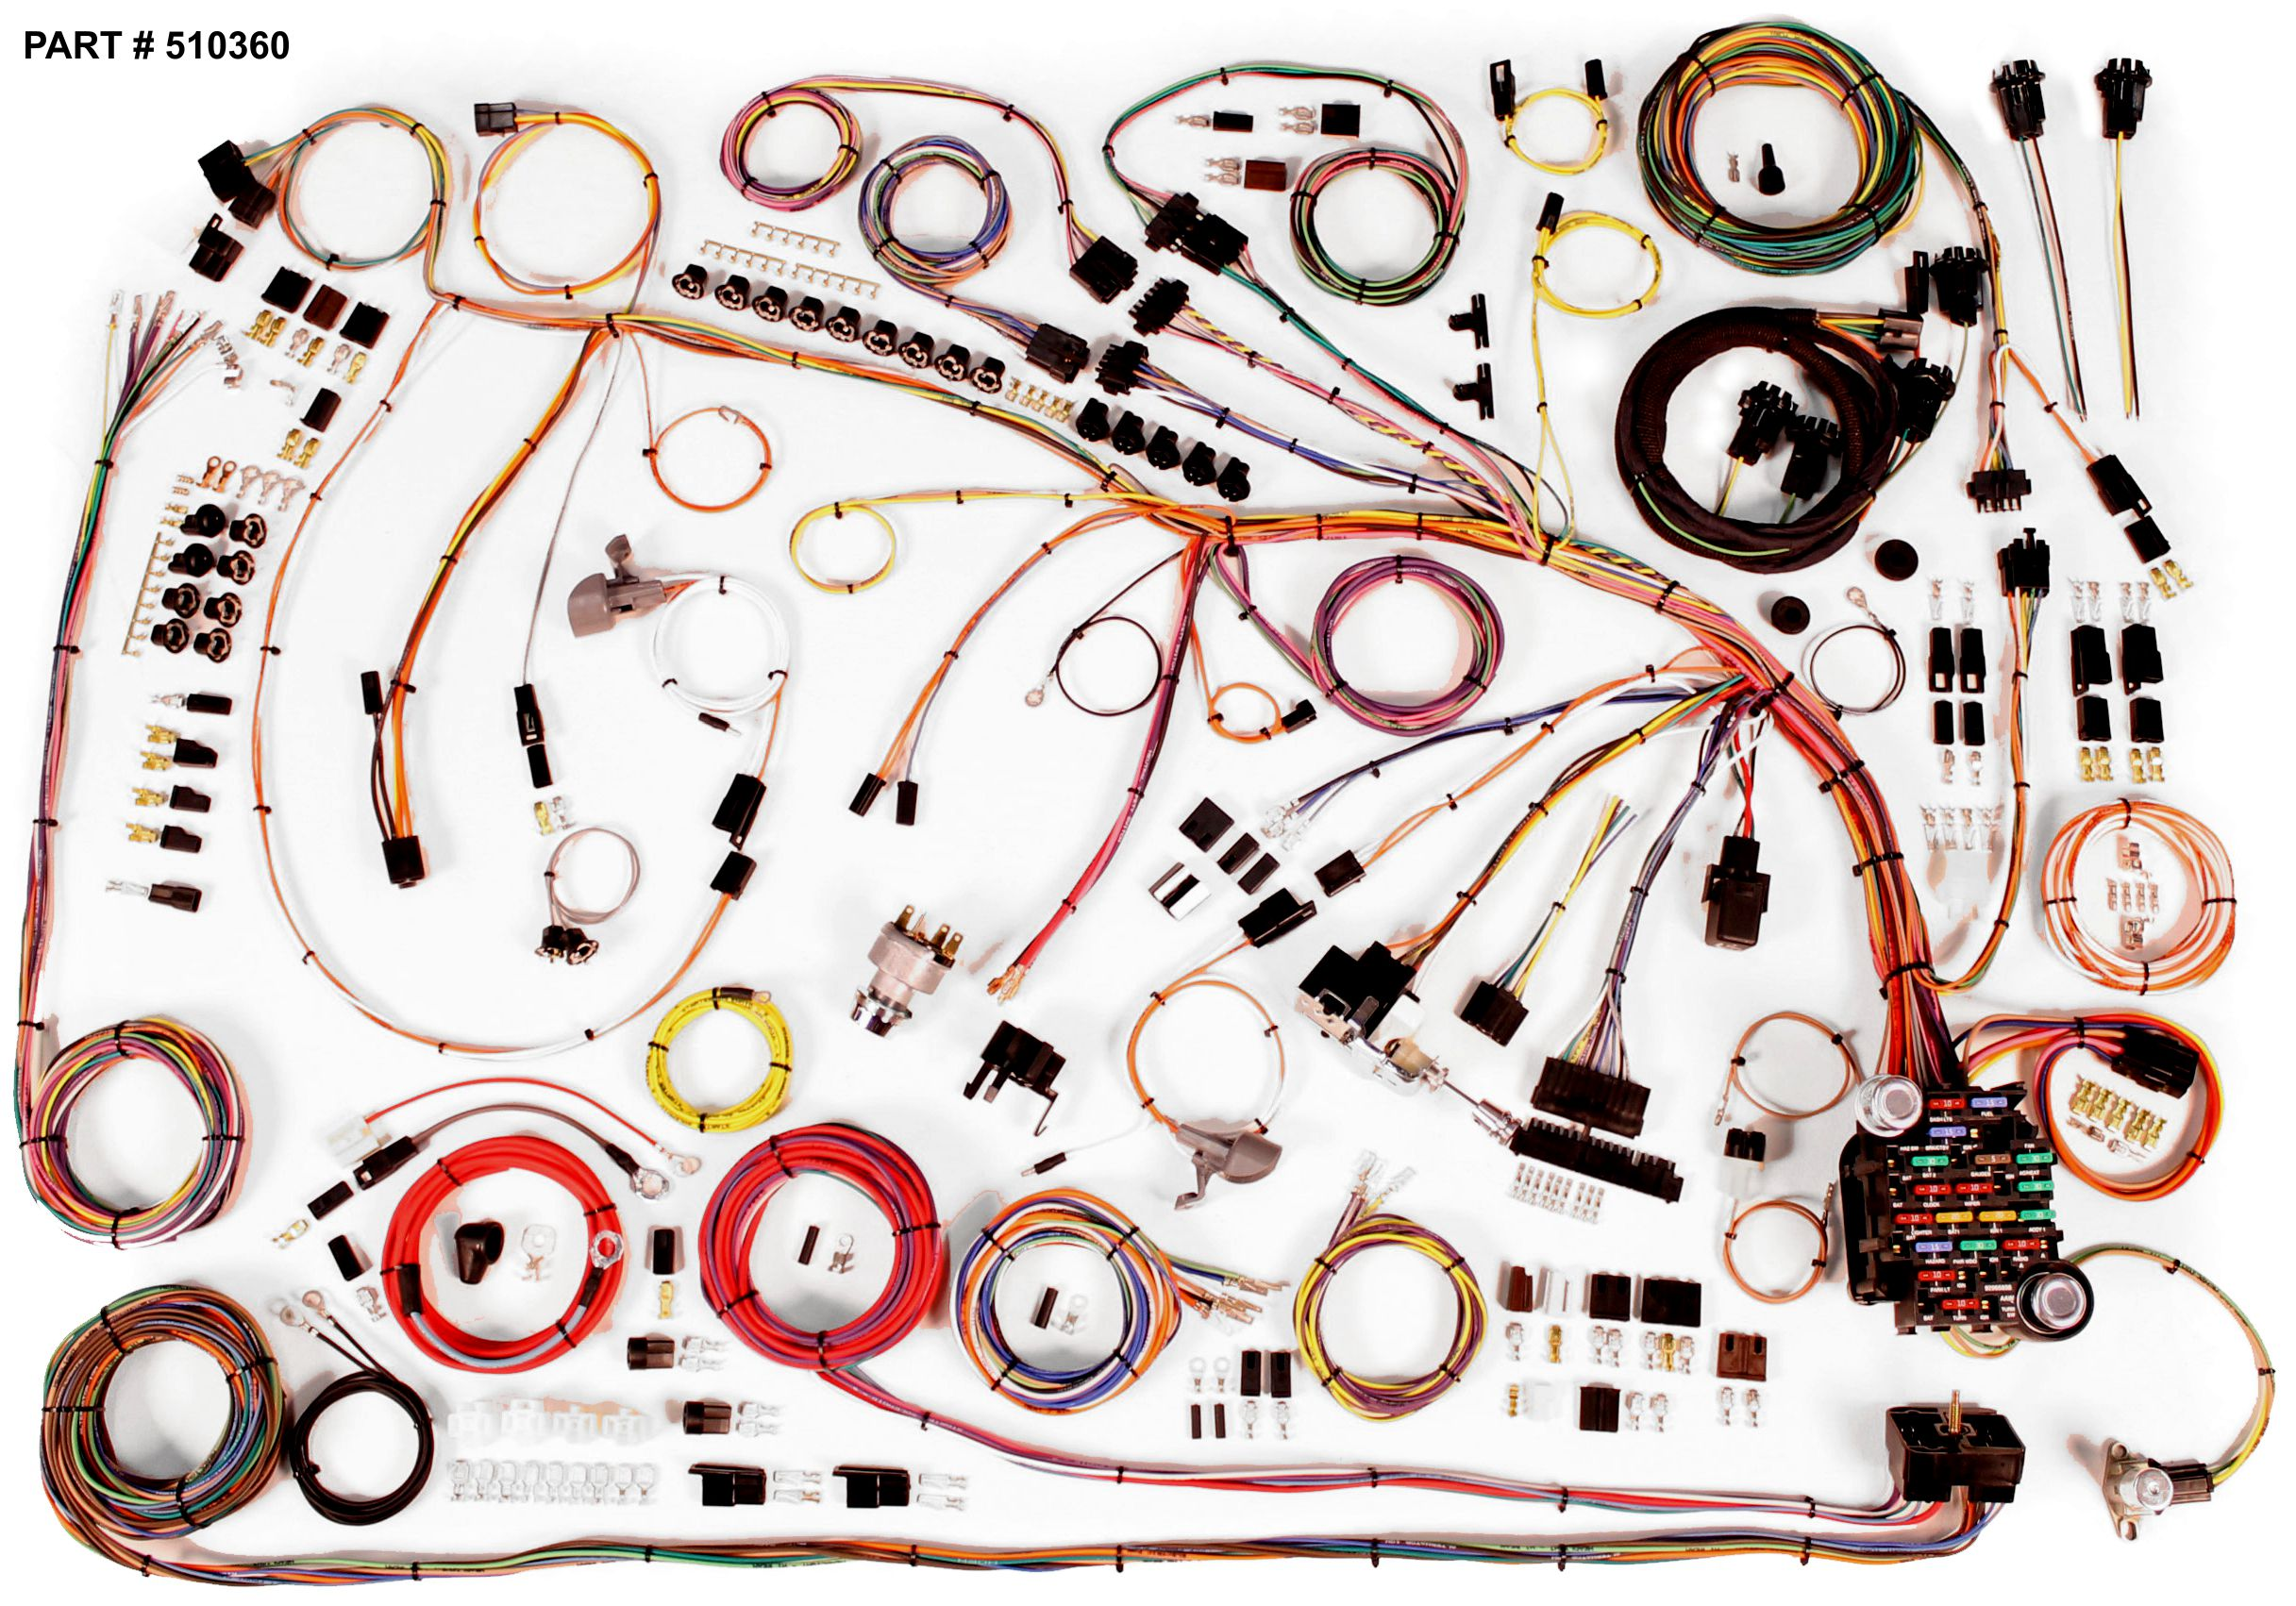 1965_510360 1965 chevrolet impala restomod wiring system 65 chevy wiring harness at readyjetset.co